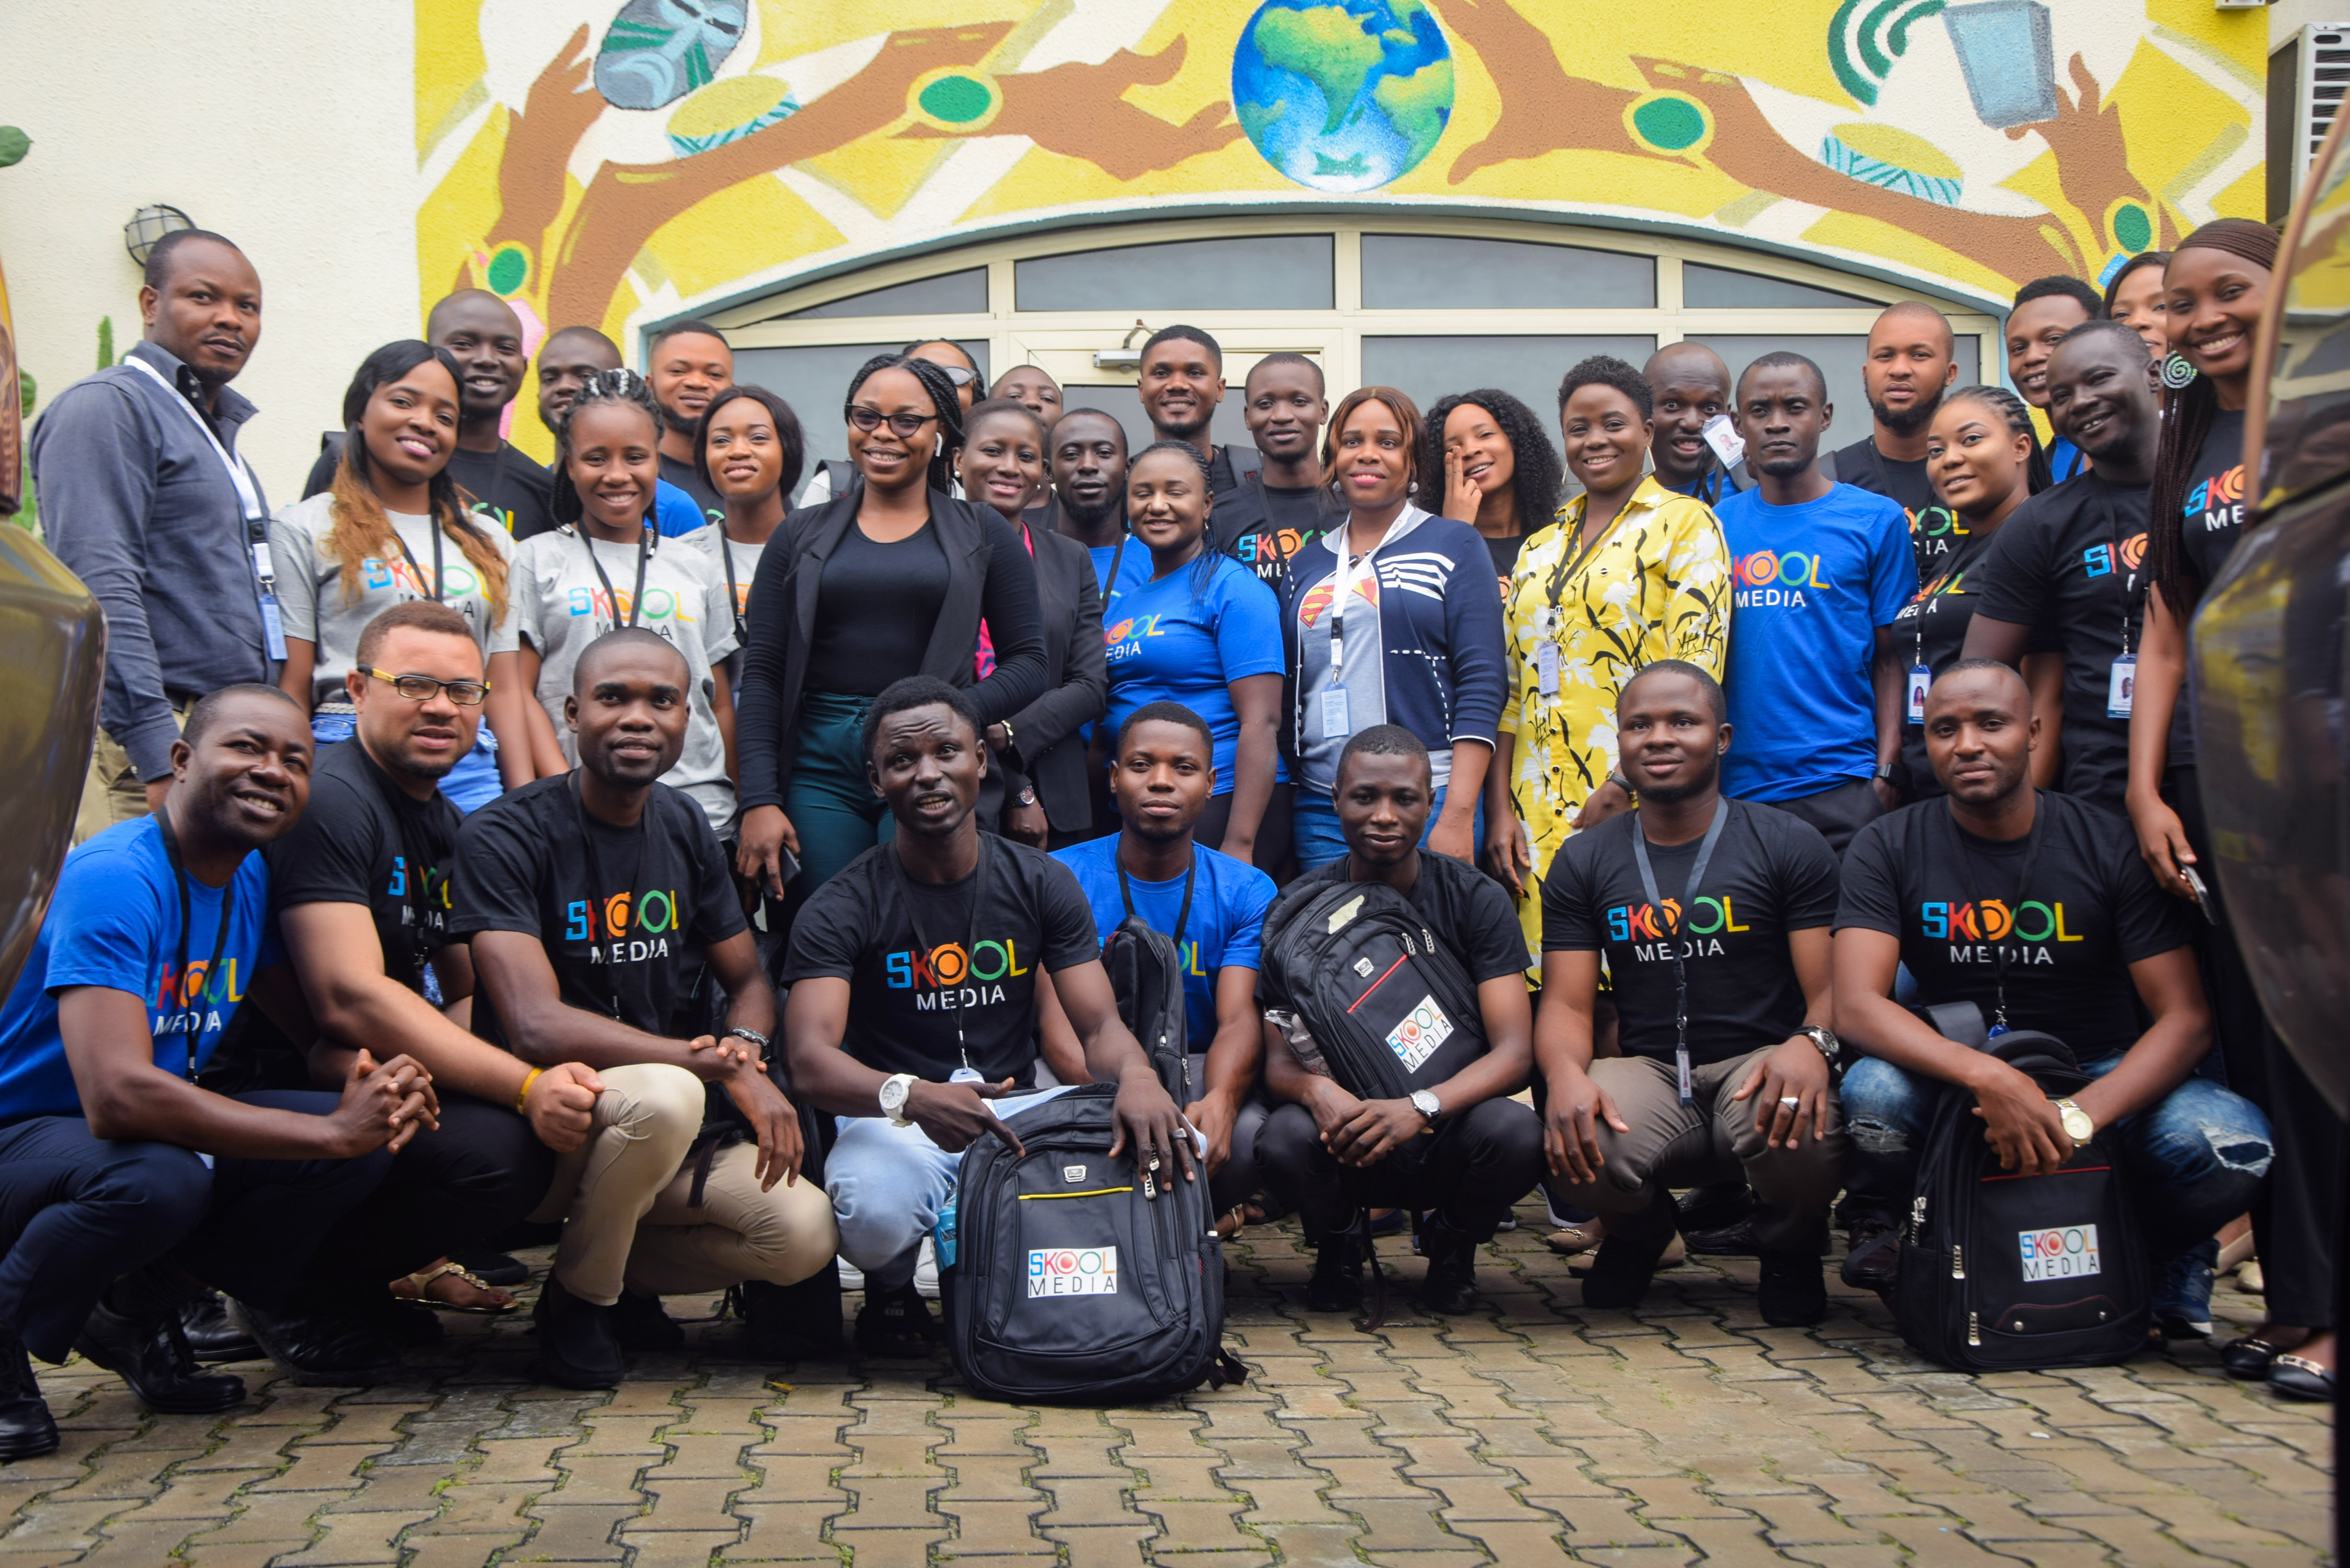 Techaholics 2019: Skool Media organizes 3-days training for its new staff